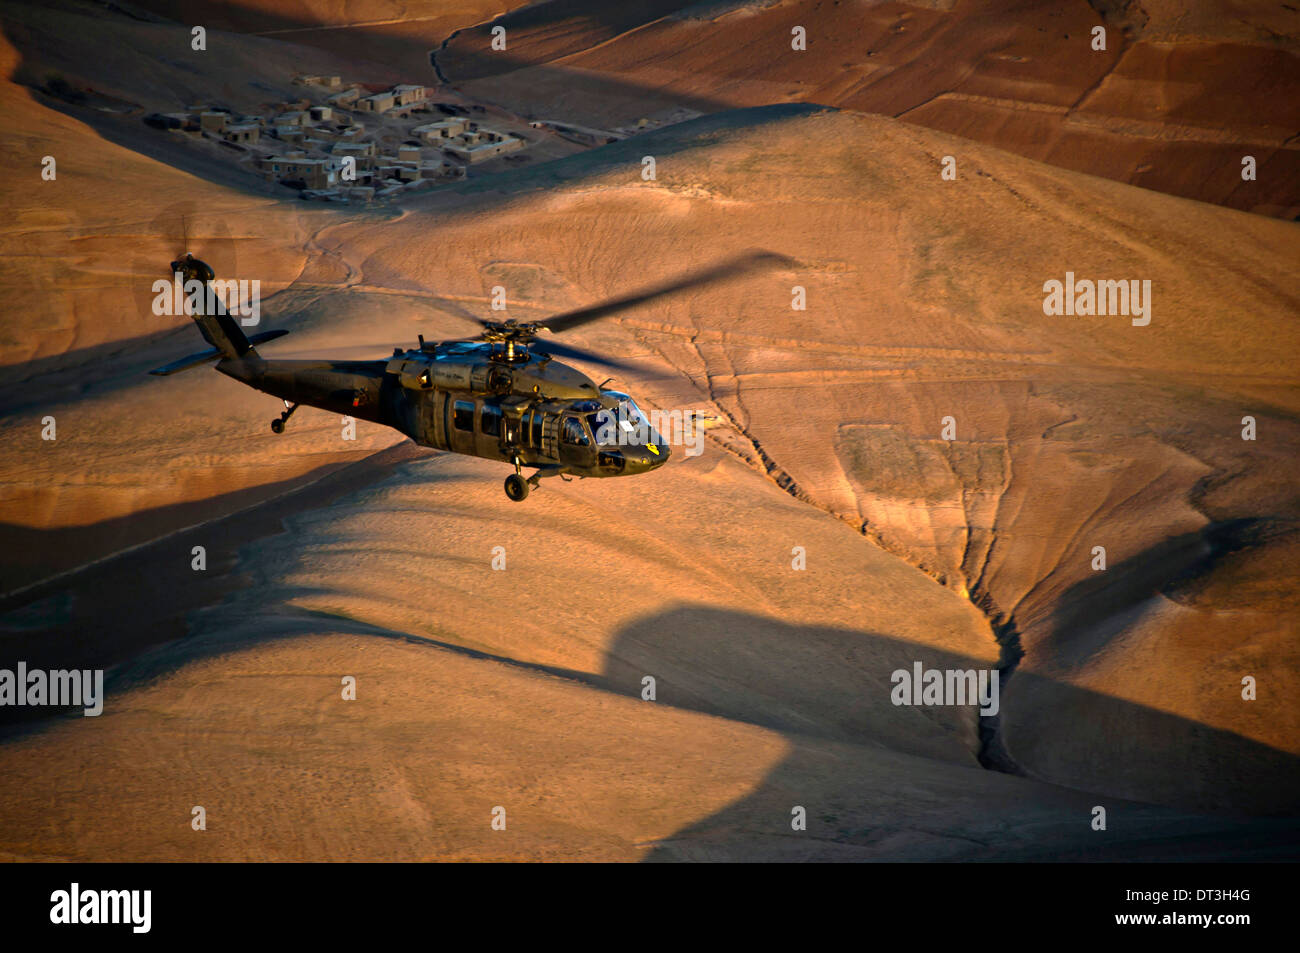 A US Army UH-60 Black Hawk helicopter flies over western Afghanistan April 12, 2012 on the way to FOB Shindand, Herat province, Afghanistan. - Stock Image